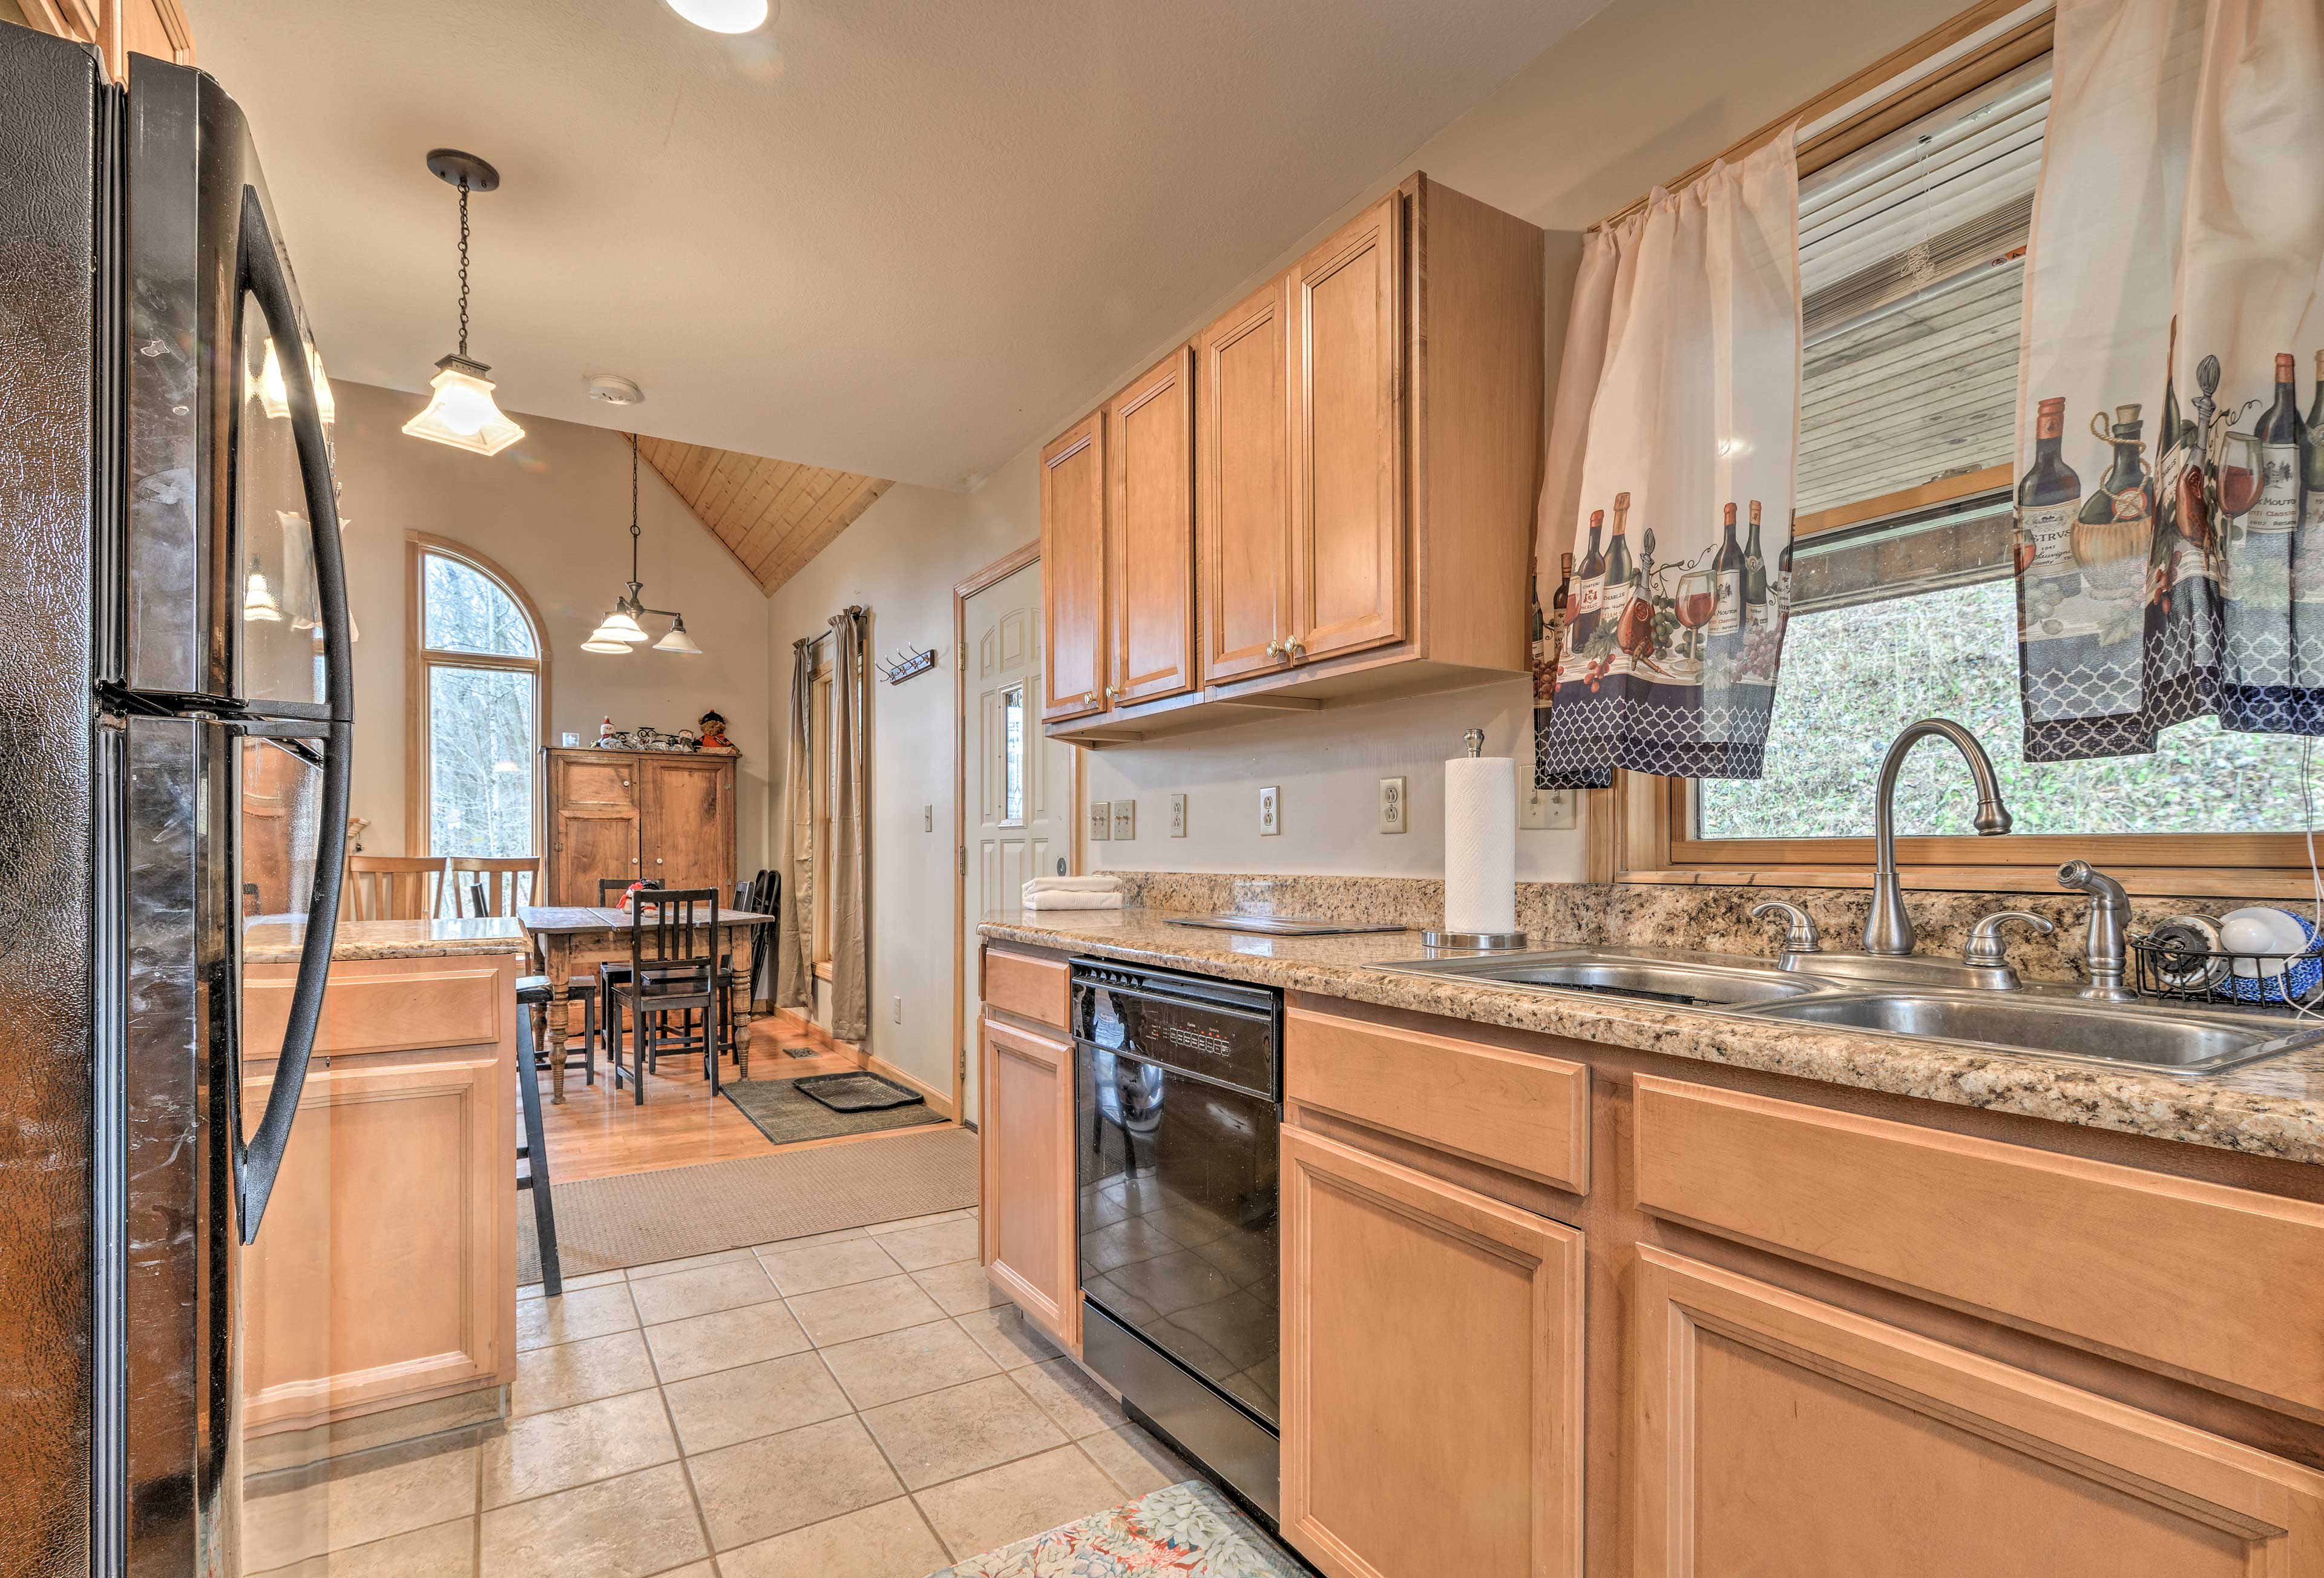 You'll have all the modern appliances and cookware you need to feed the family!